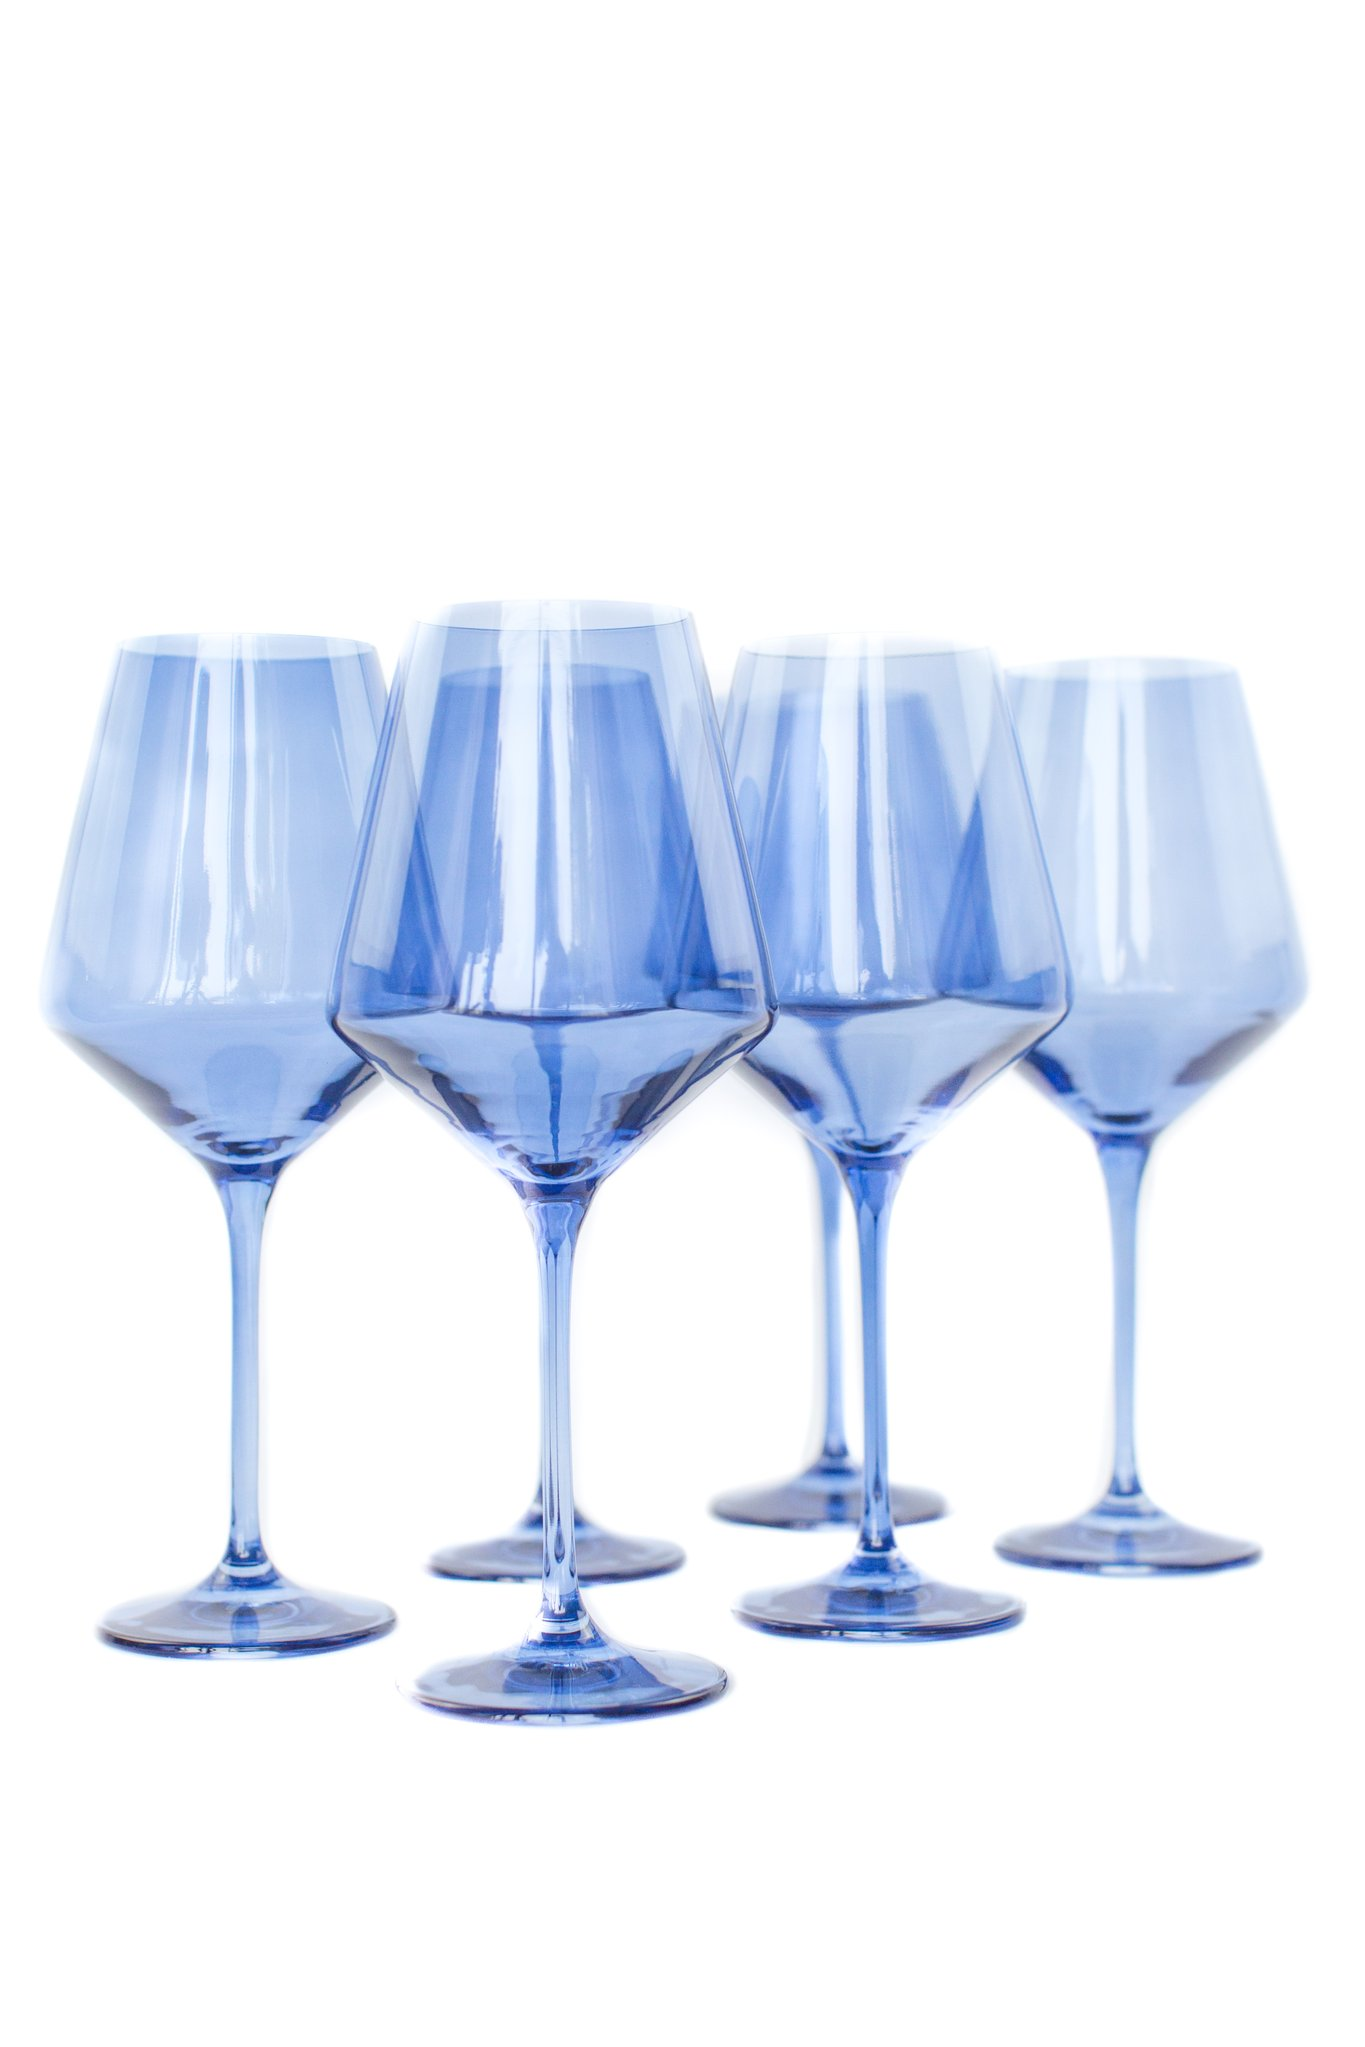 Estelle Colored Wine Stemware, Set of Six | Cobalt